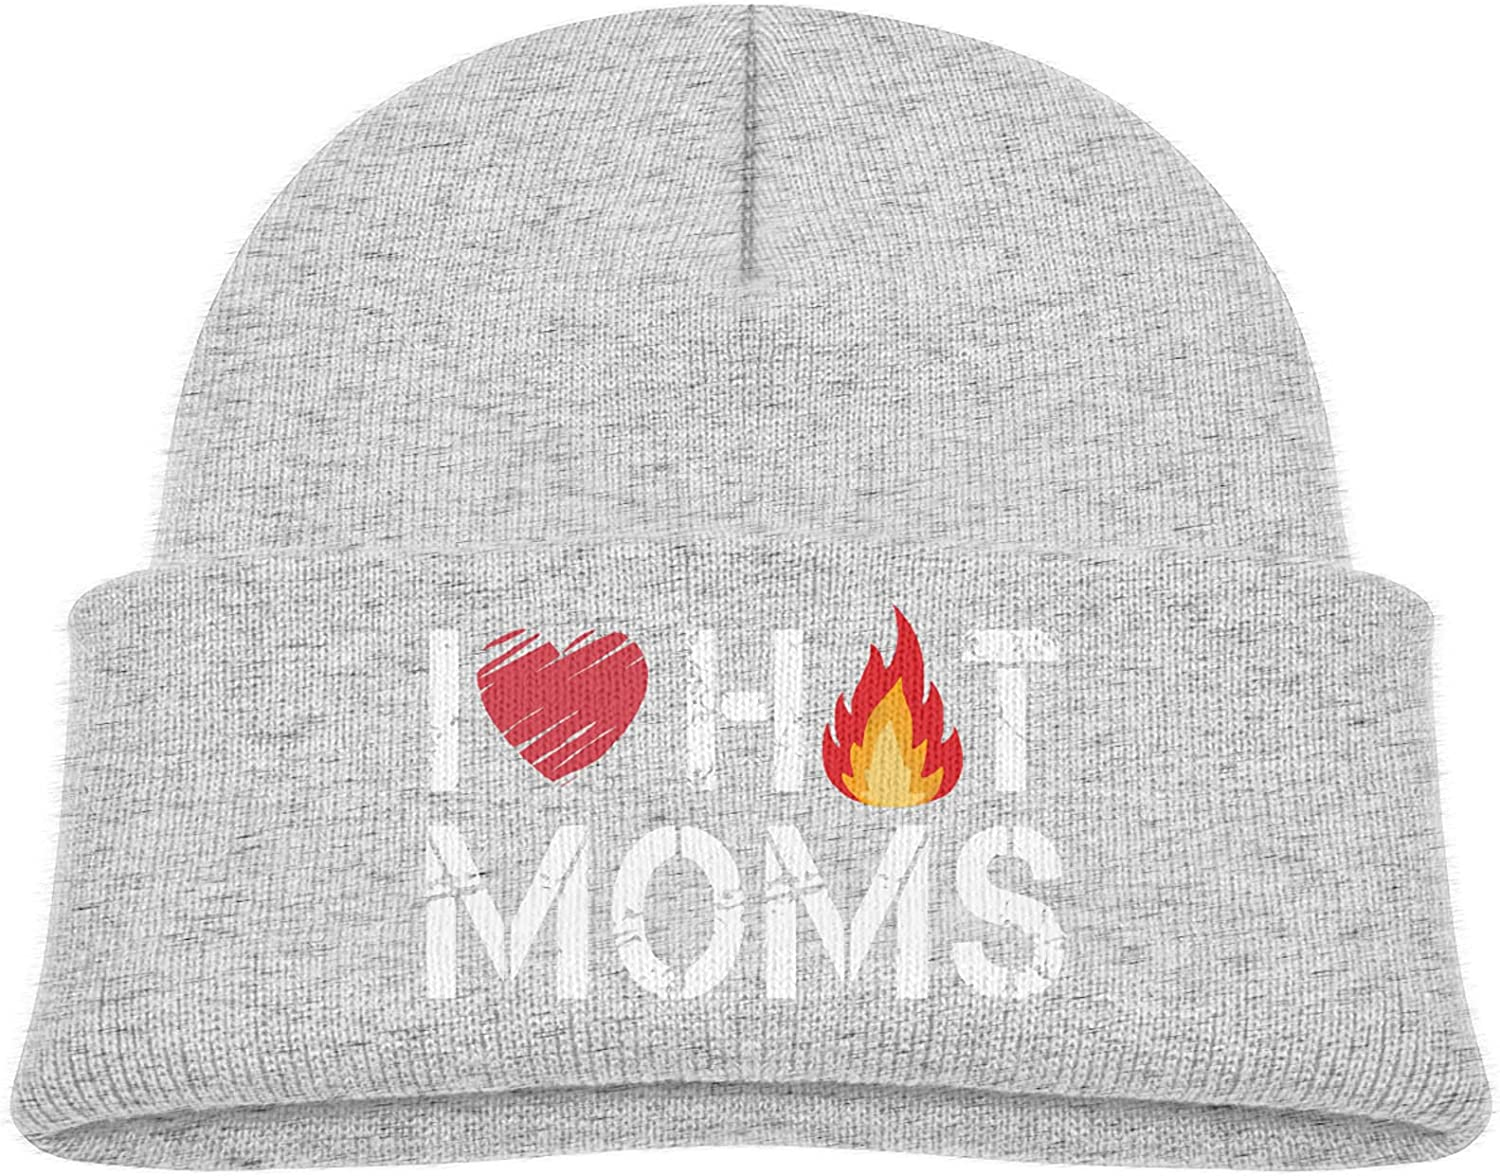 I Max 73% OFF Love Hot Moms Trendy Bump Knit Beanie Cap for Winter Hats Year-end annual account